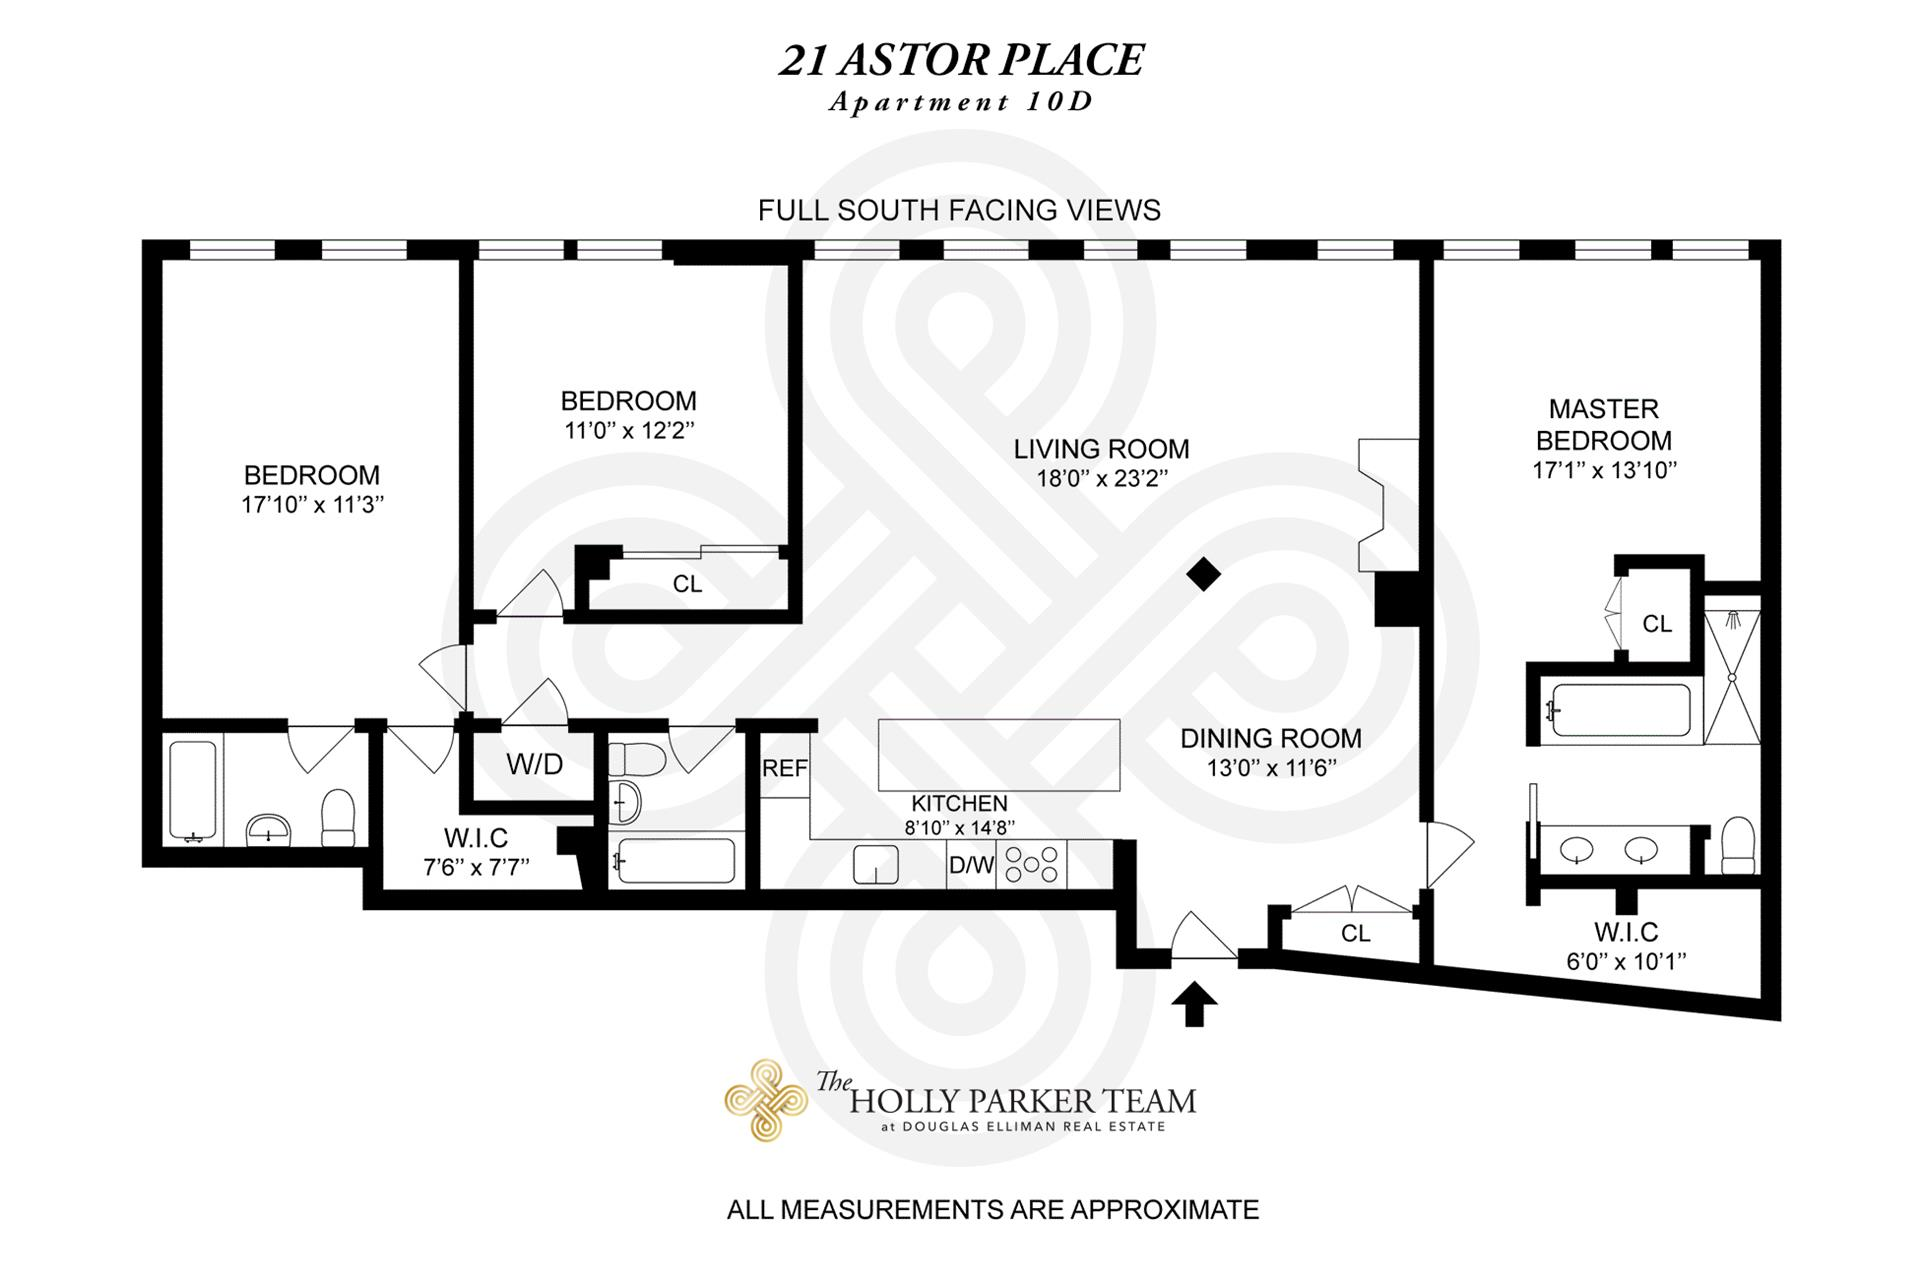 Floor plan of 21 Astor Pl, 10D - Greenwich Village, New York